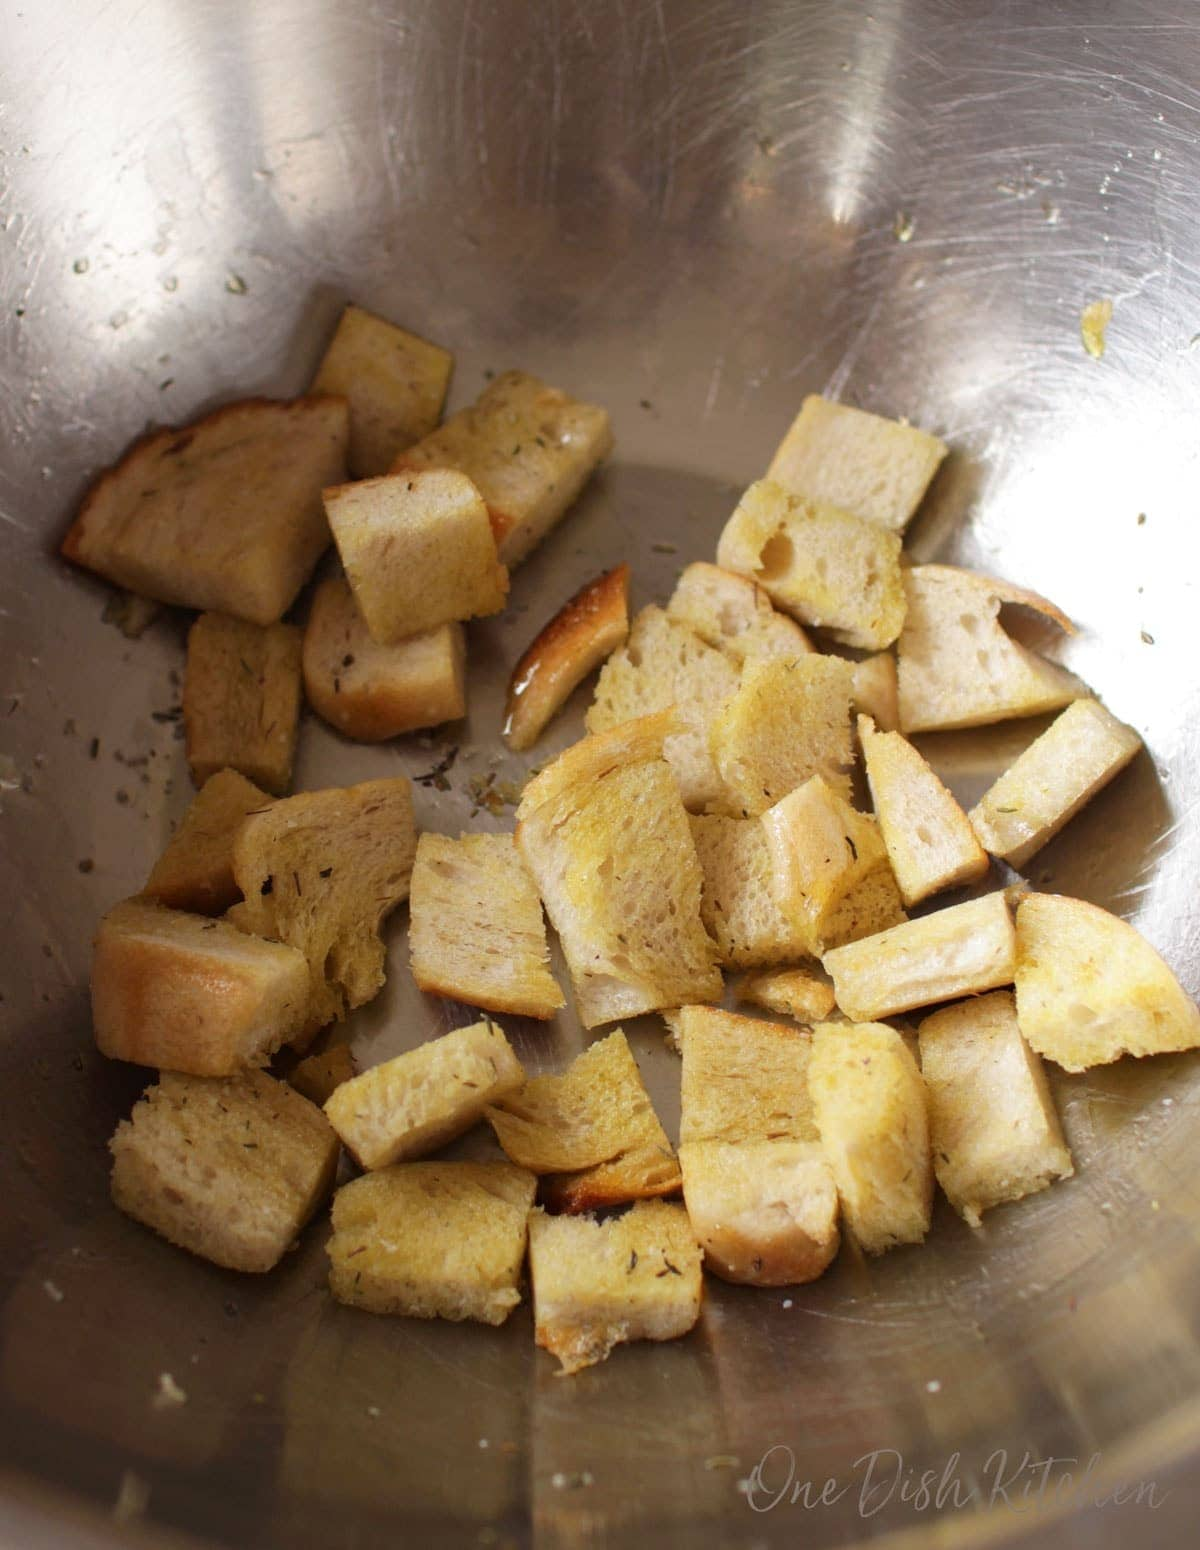 Croutons in a bowl topped with olive oil, salt, and herbs